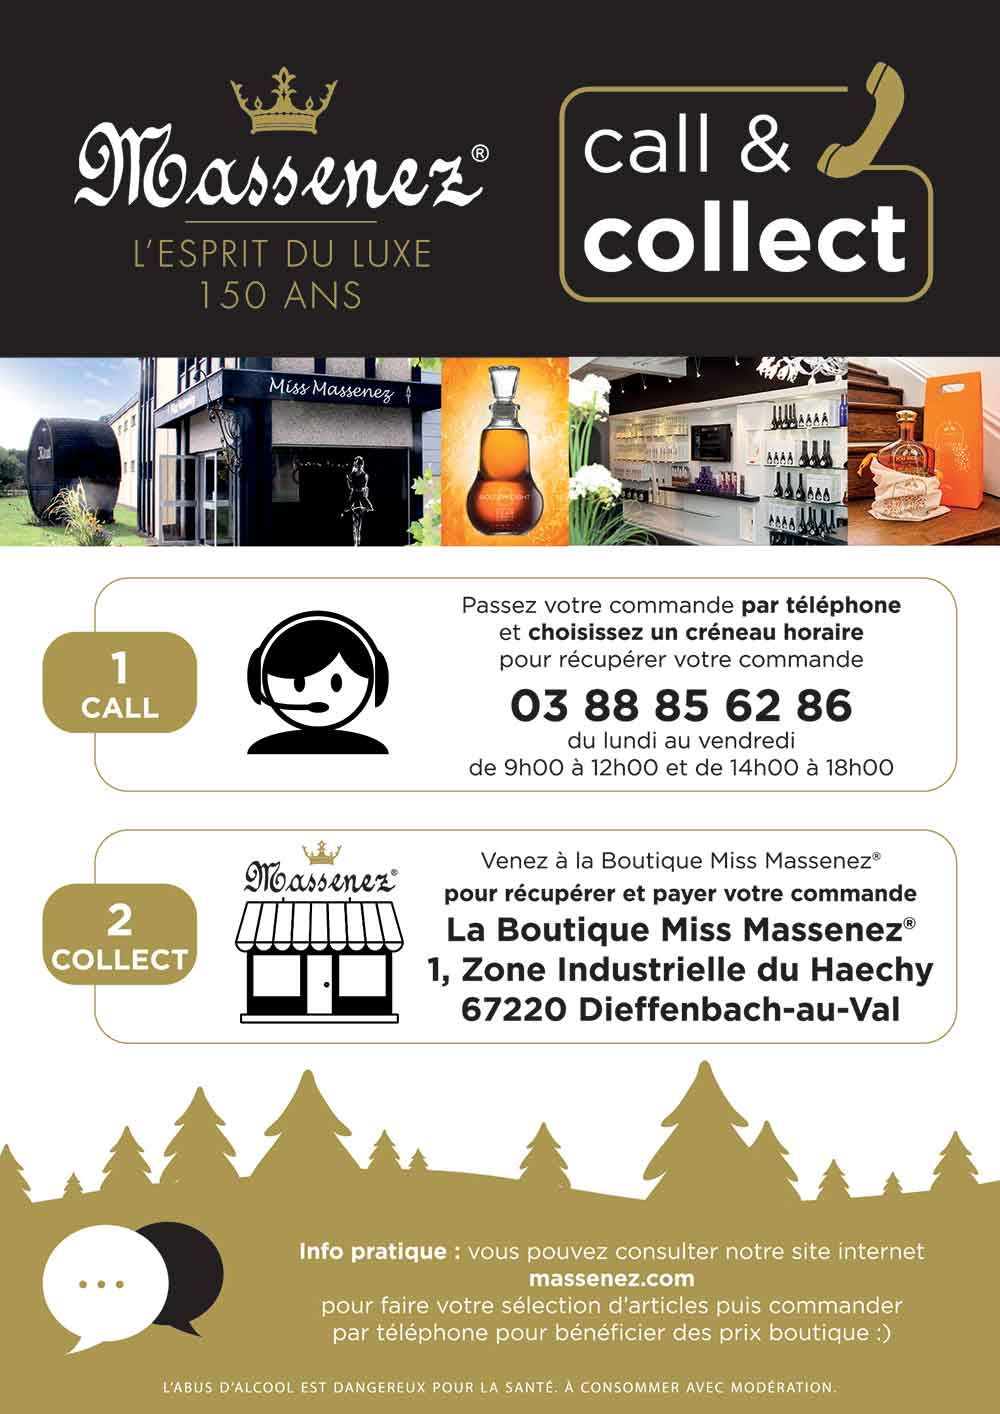 call-and-collect-boutique-massenez